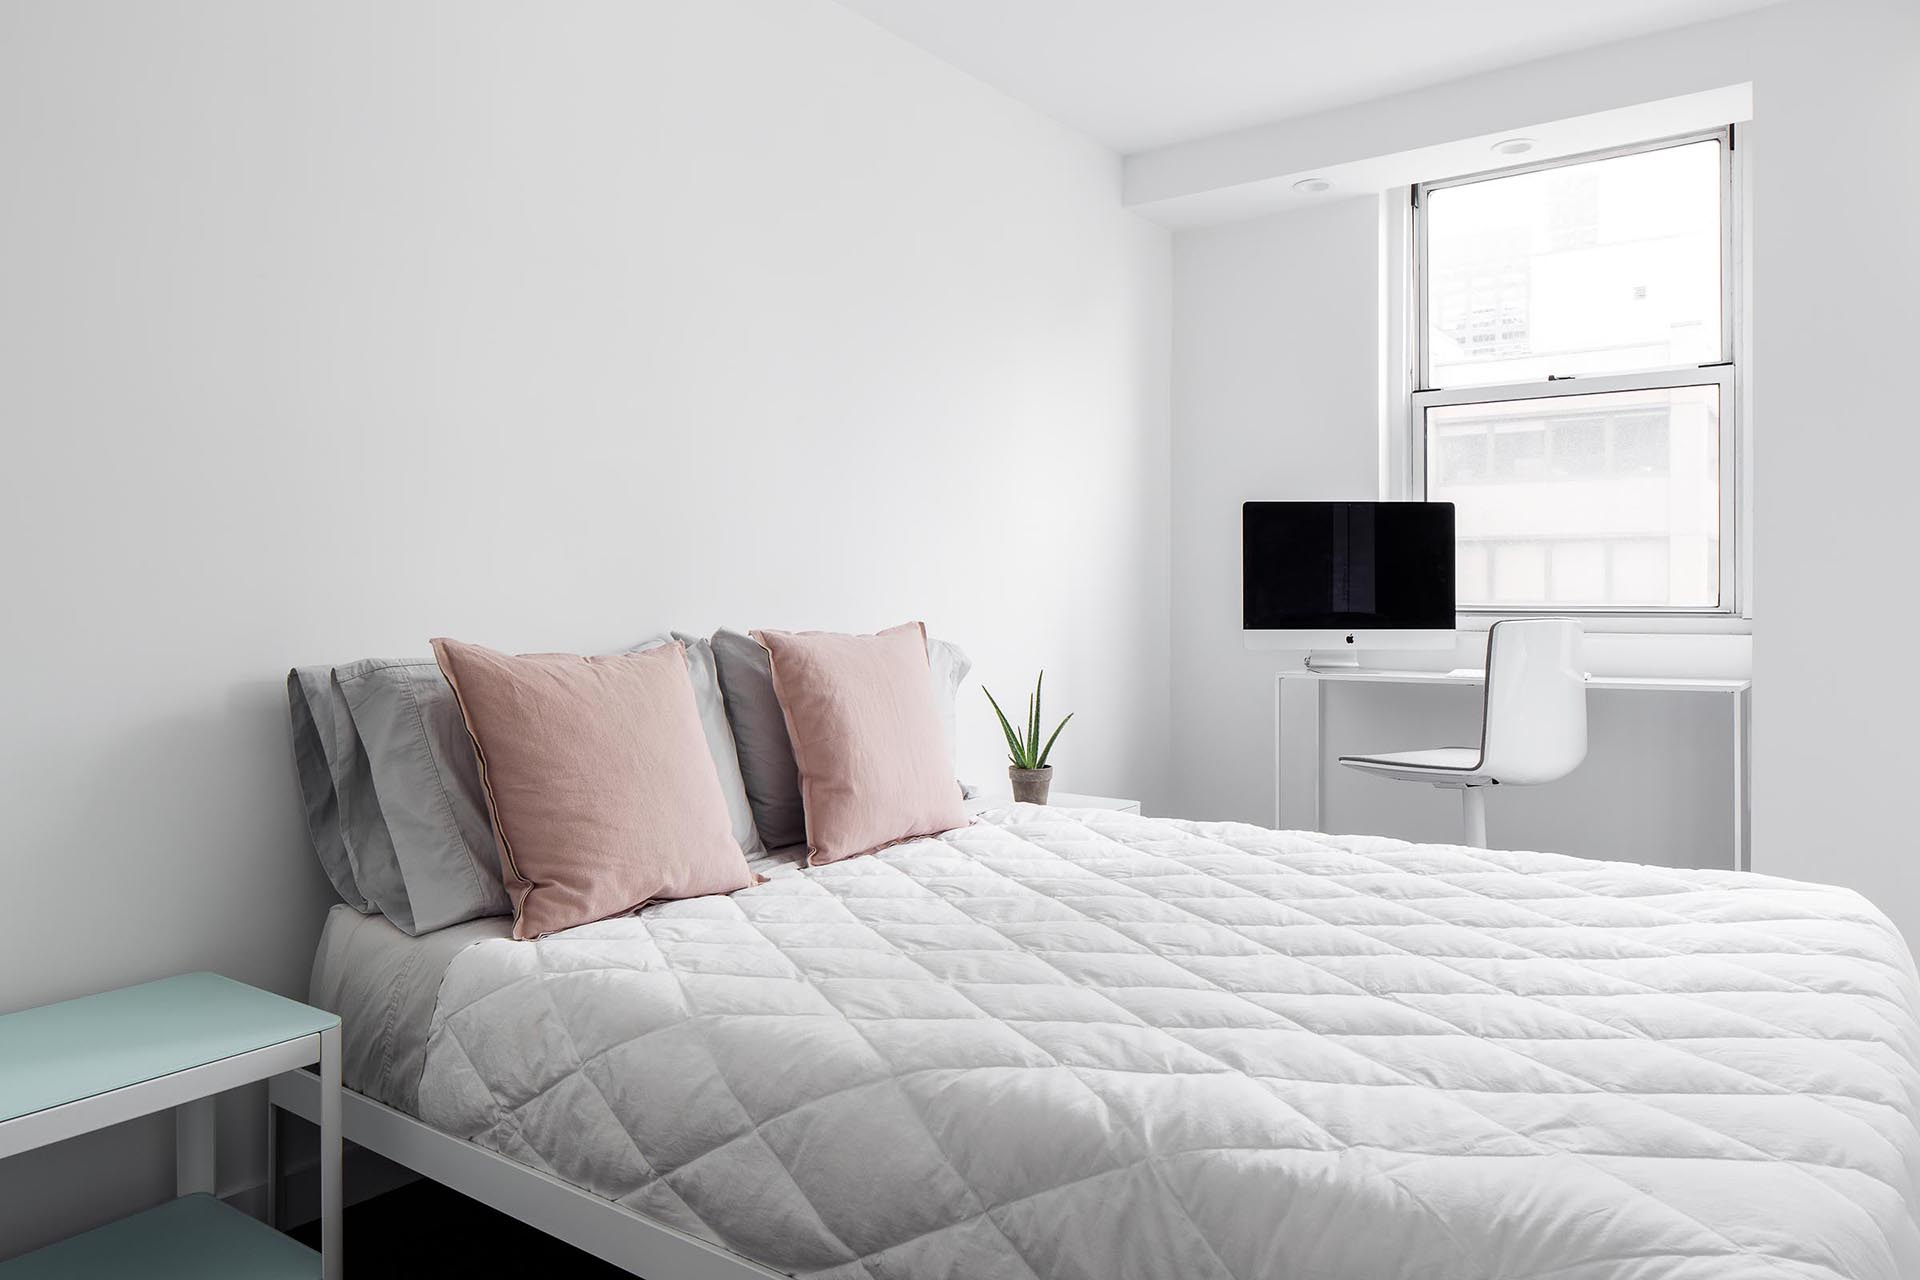 A minimally furnished bedroom with a desk by the window.